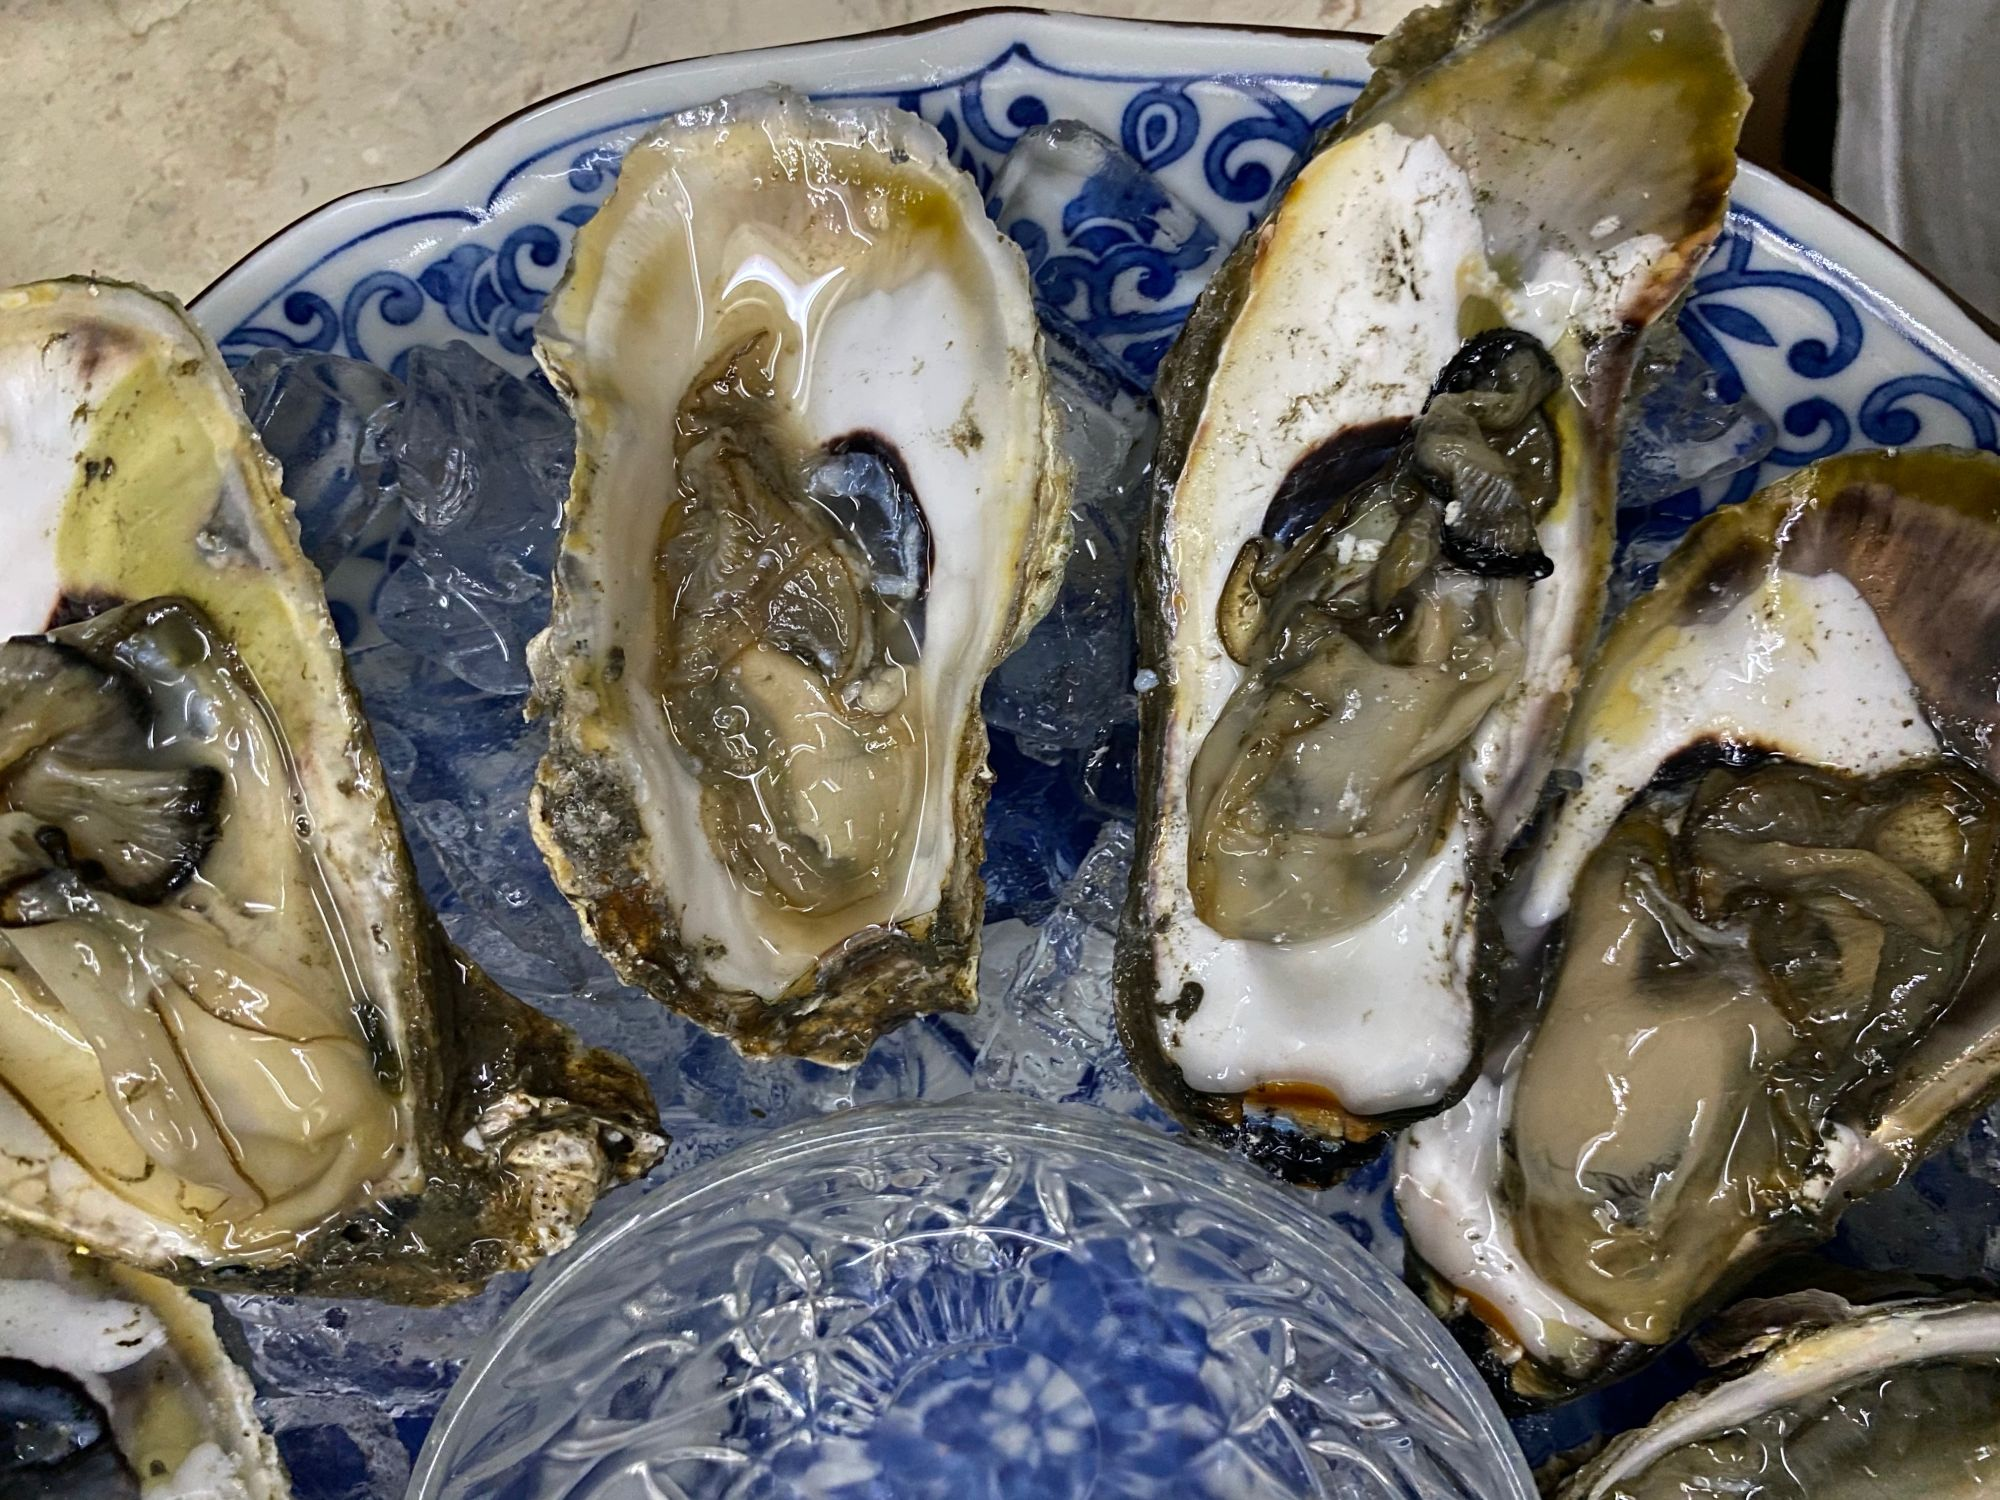 Support Local Farmers While Eating Fresh Aklan Oysters, Rock Lobsters, and Scallops From Lambat Philippines